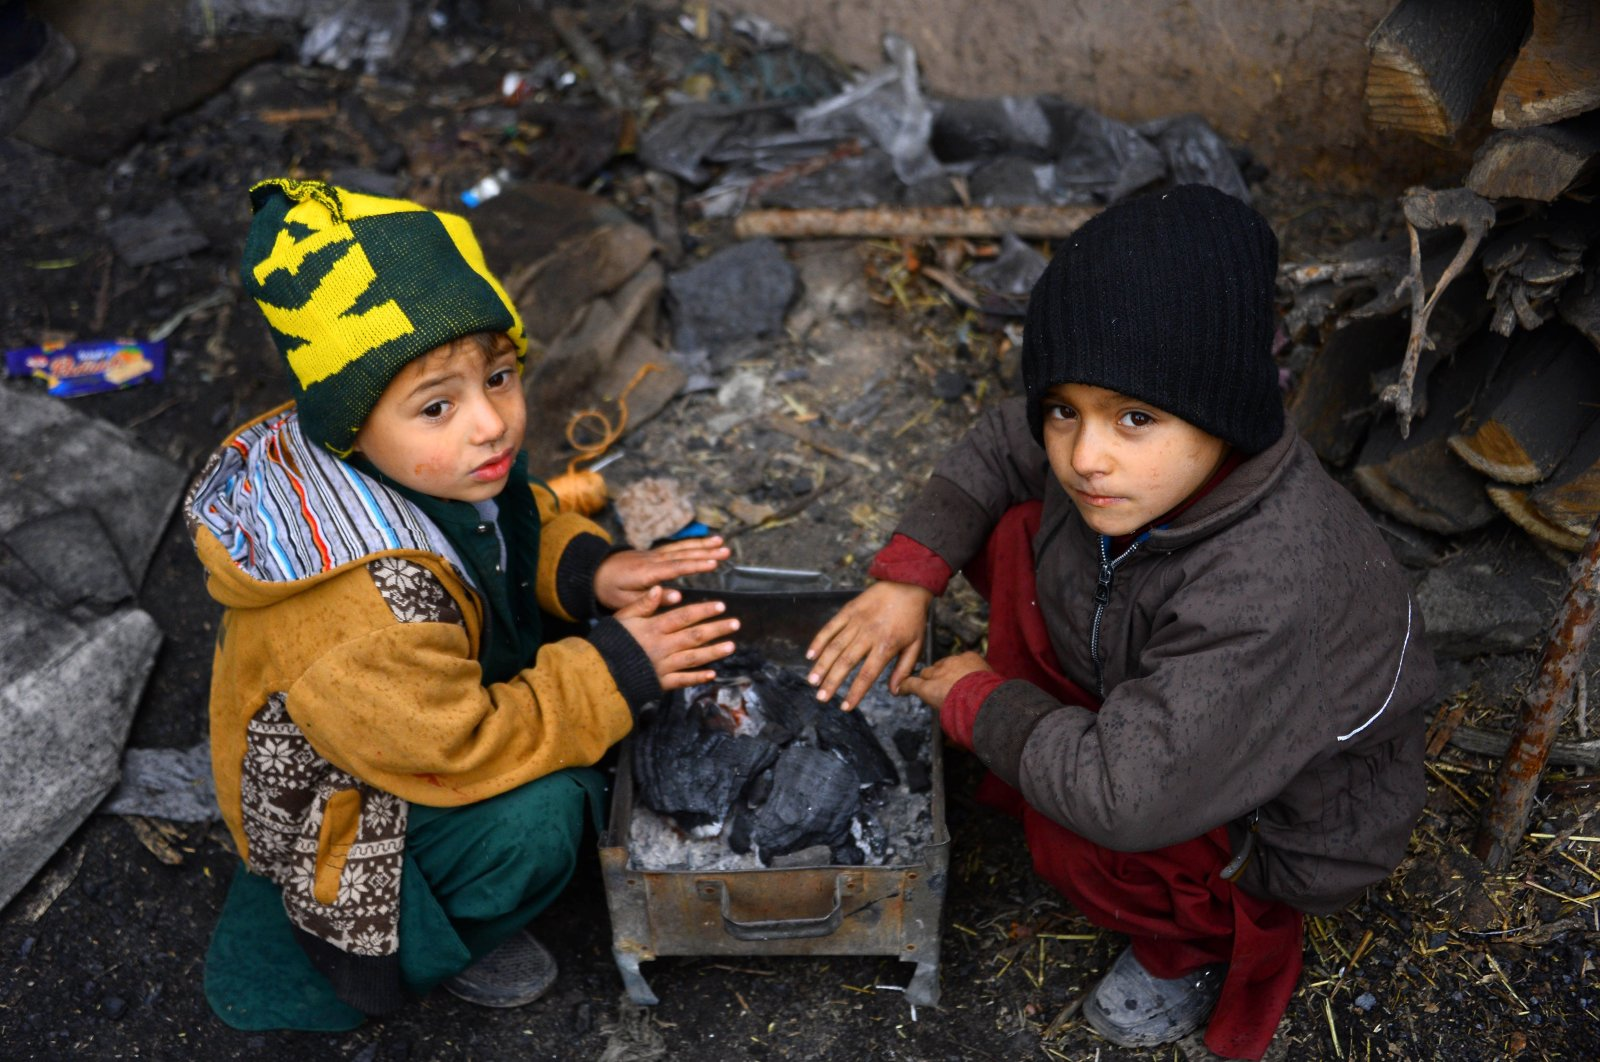 Children warm up around a charcoal fire, in Herat, Afghanistan, Nov. 22, 2020. (AFP Photo)